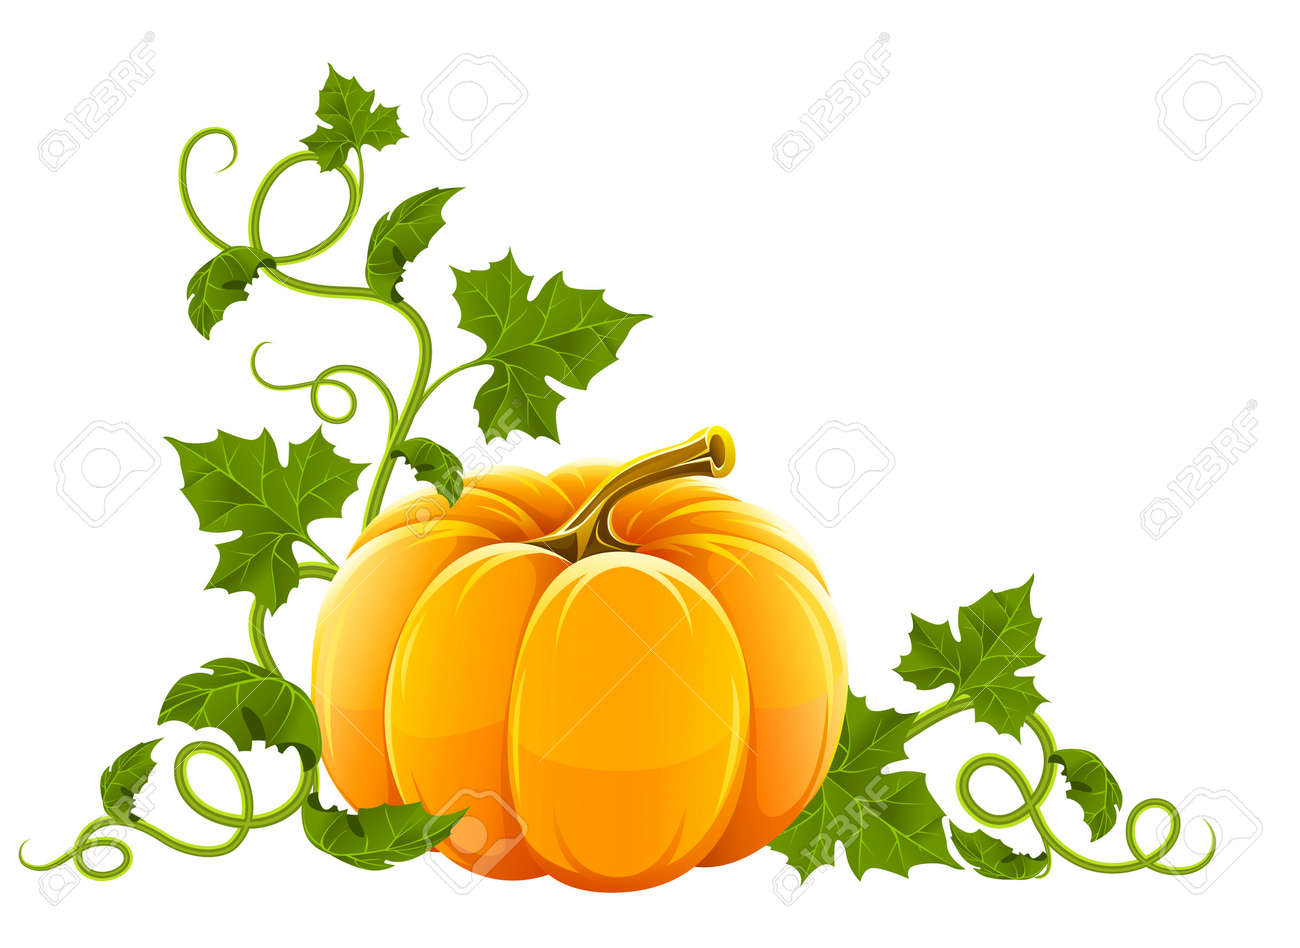 ripe orange pumpkin vegetable with green leaves Stock Vector - 7646122